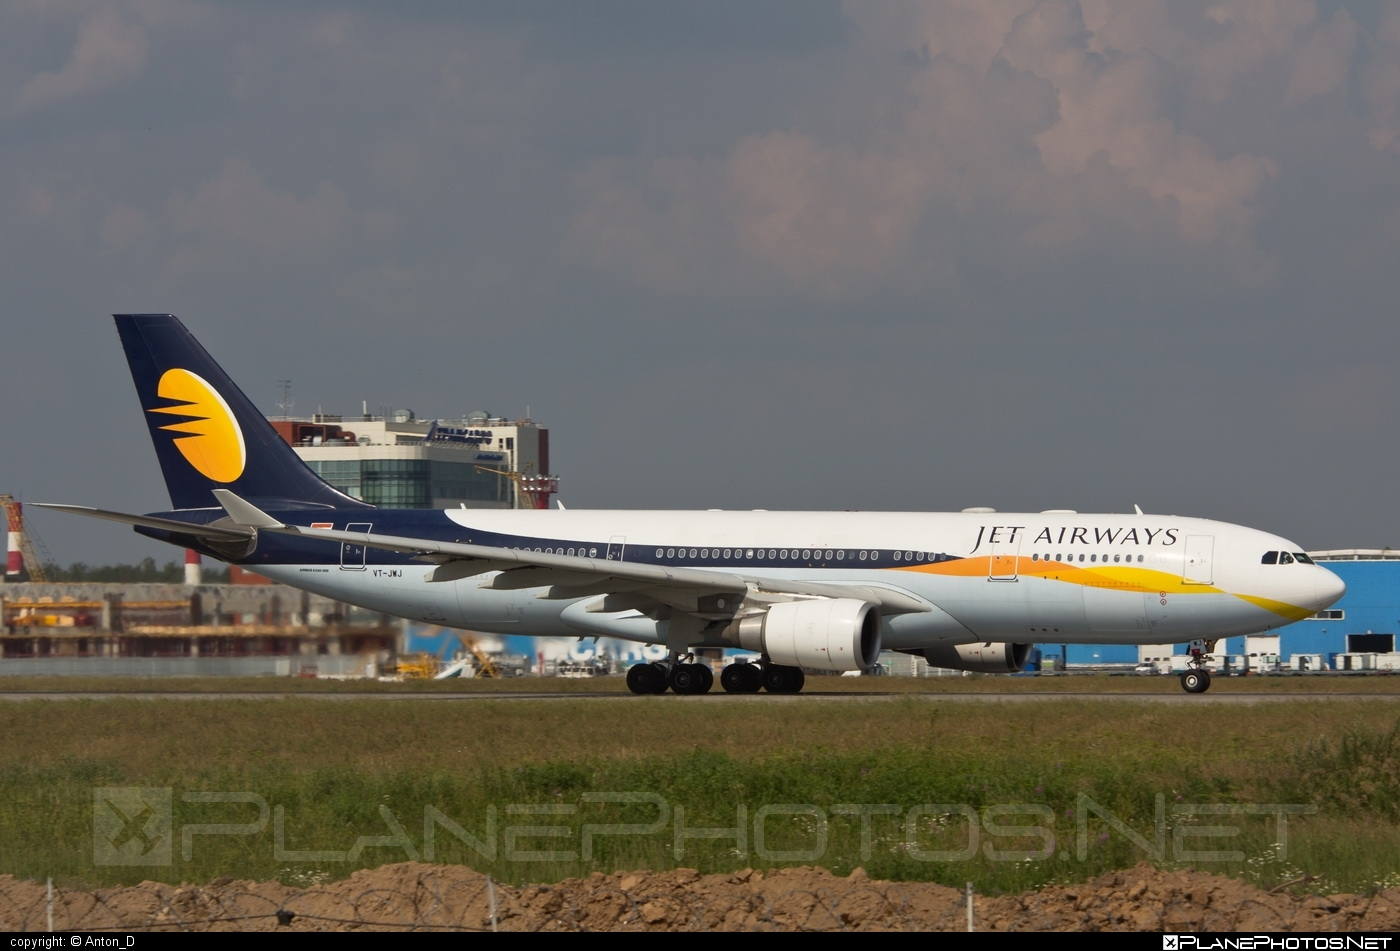 Airbus A330-202 - VT-JWJ operated by Jet Airways #a330 #a330family #airbus #airbus330